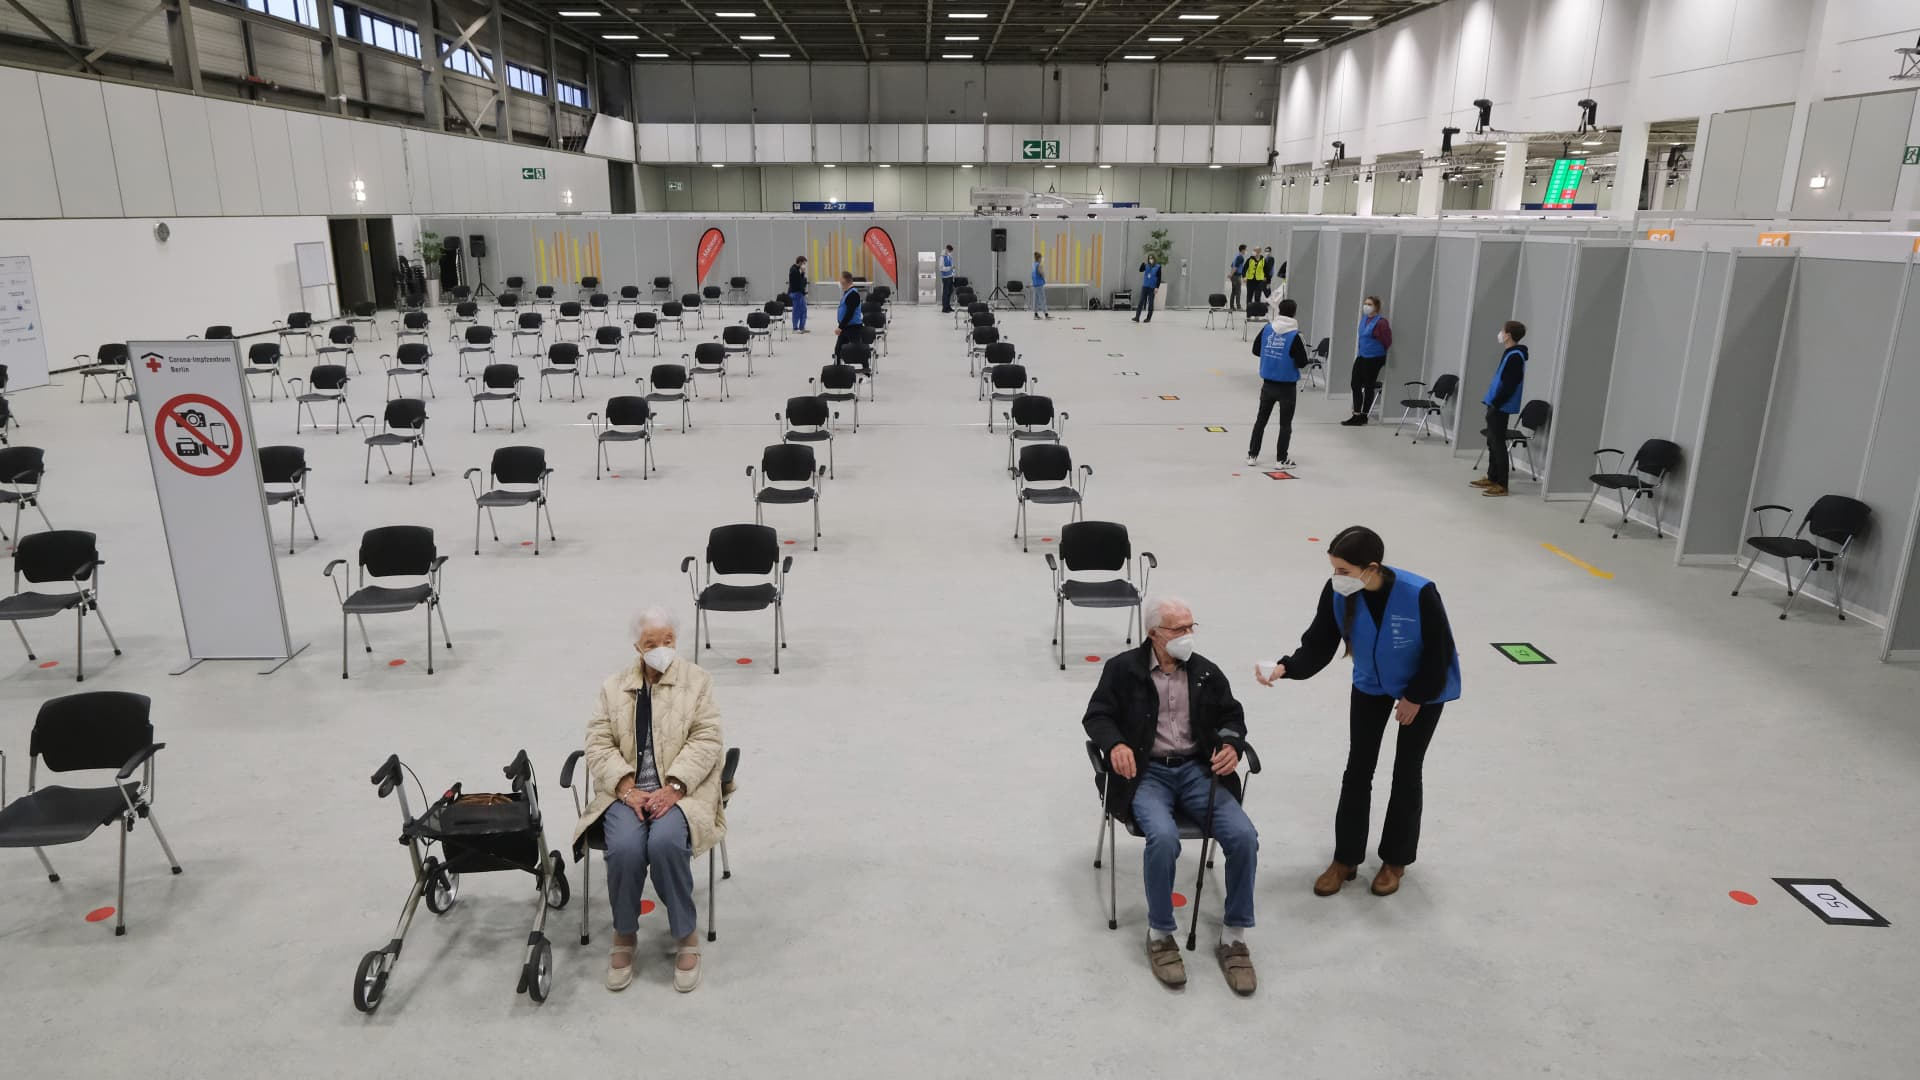 Elderly people who had just been inoculated against COVID-19 wait briefly in case of side effects before departing at the vaccine center at the Messe Berlin trade fair grounds on the center's opening day during the second wave of the coronavirus pandemic on January 18, 2021 in Berlin, Germany. The center is the third to open in Berlin. Three more are to open in coming weeks once shipments of the Pfizer/BioNTech and Moderna vaccines pick up pace.